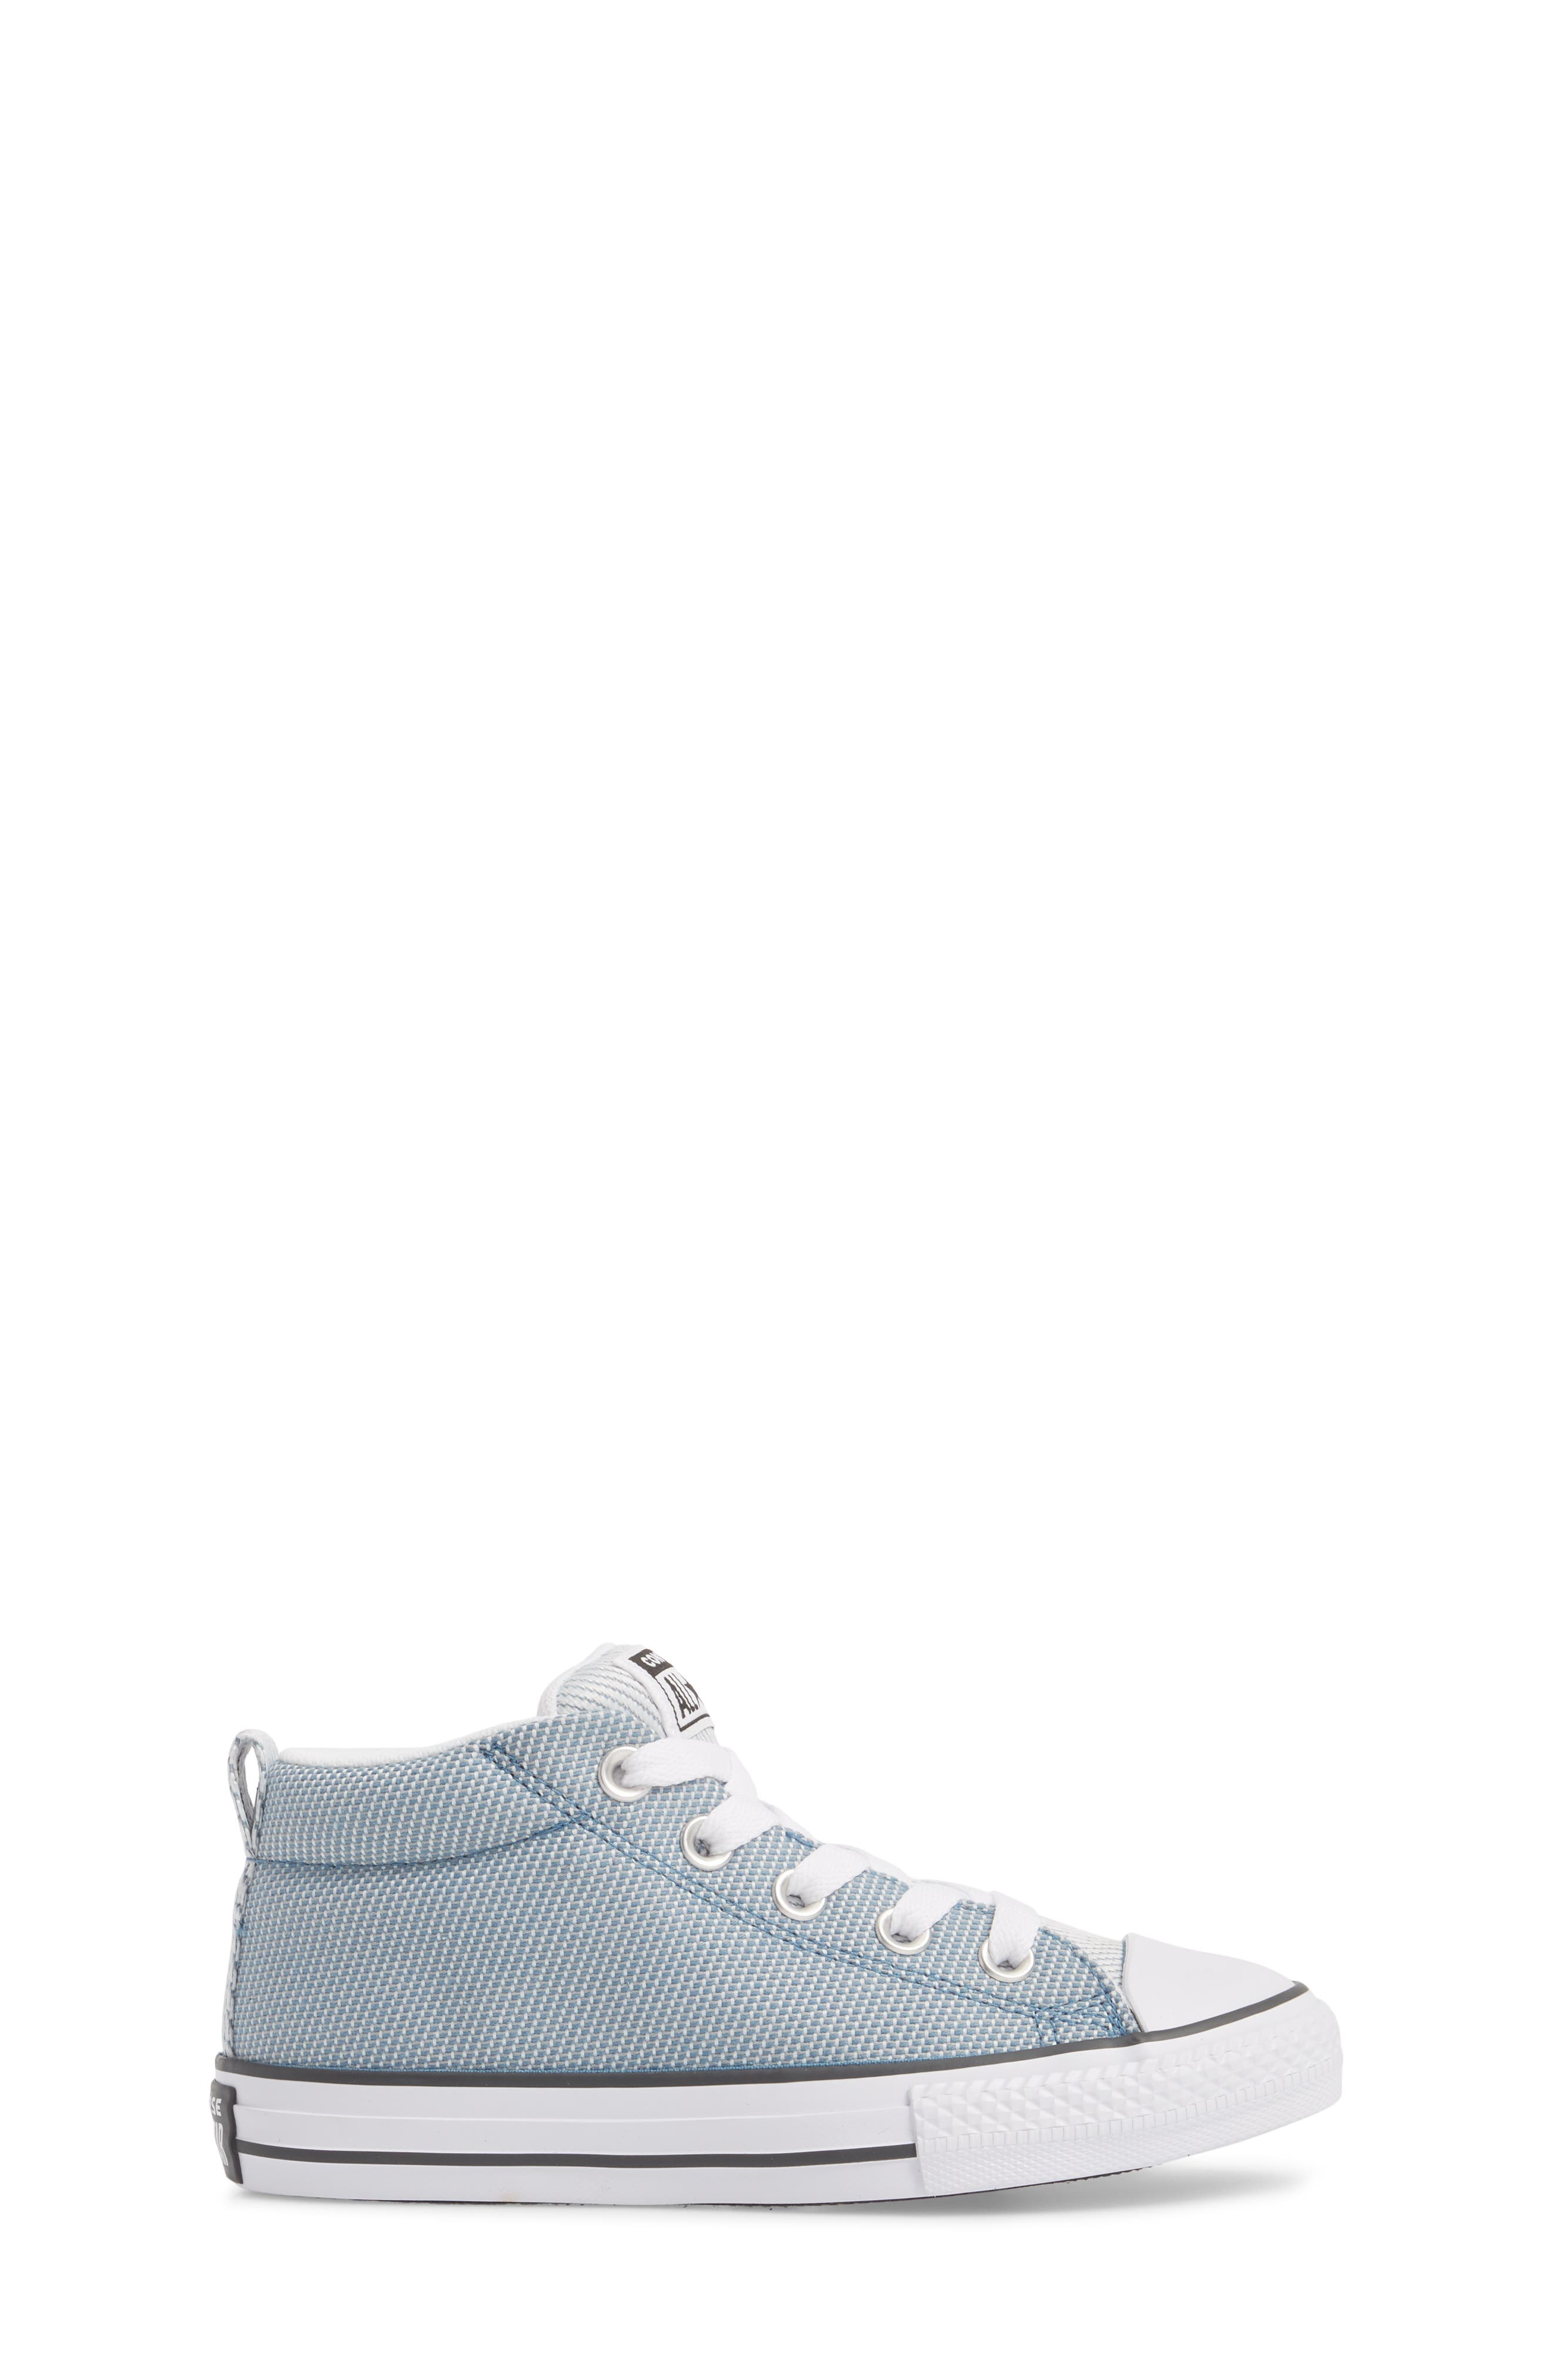 Chuck Taylor<sup>®</sup> All Star<sup>®</sup> Woven Street Mid Sneaker,                             Alternate thumbnail 3, color,                             400